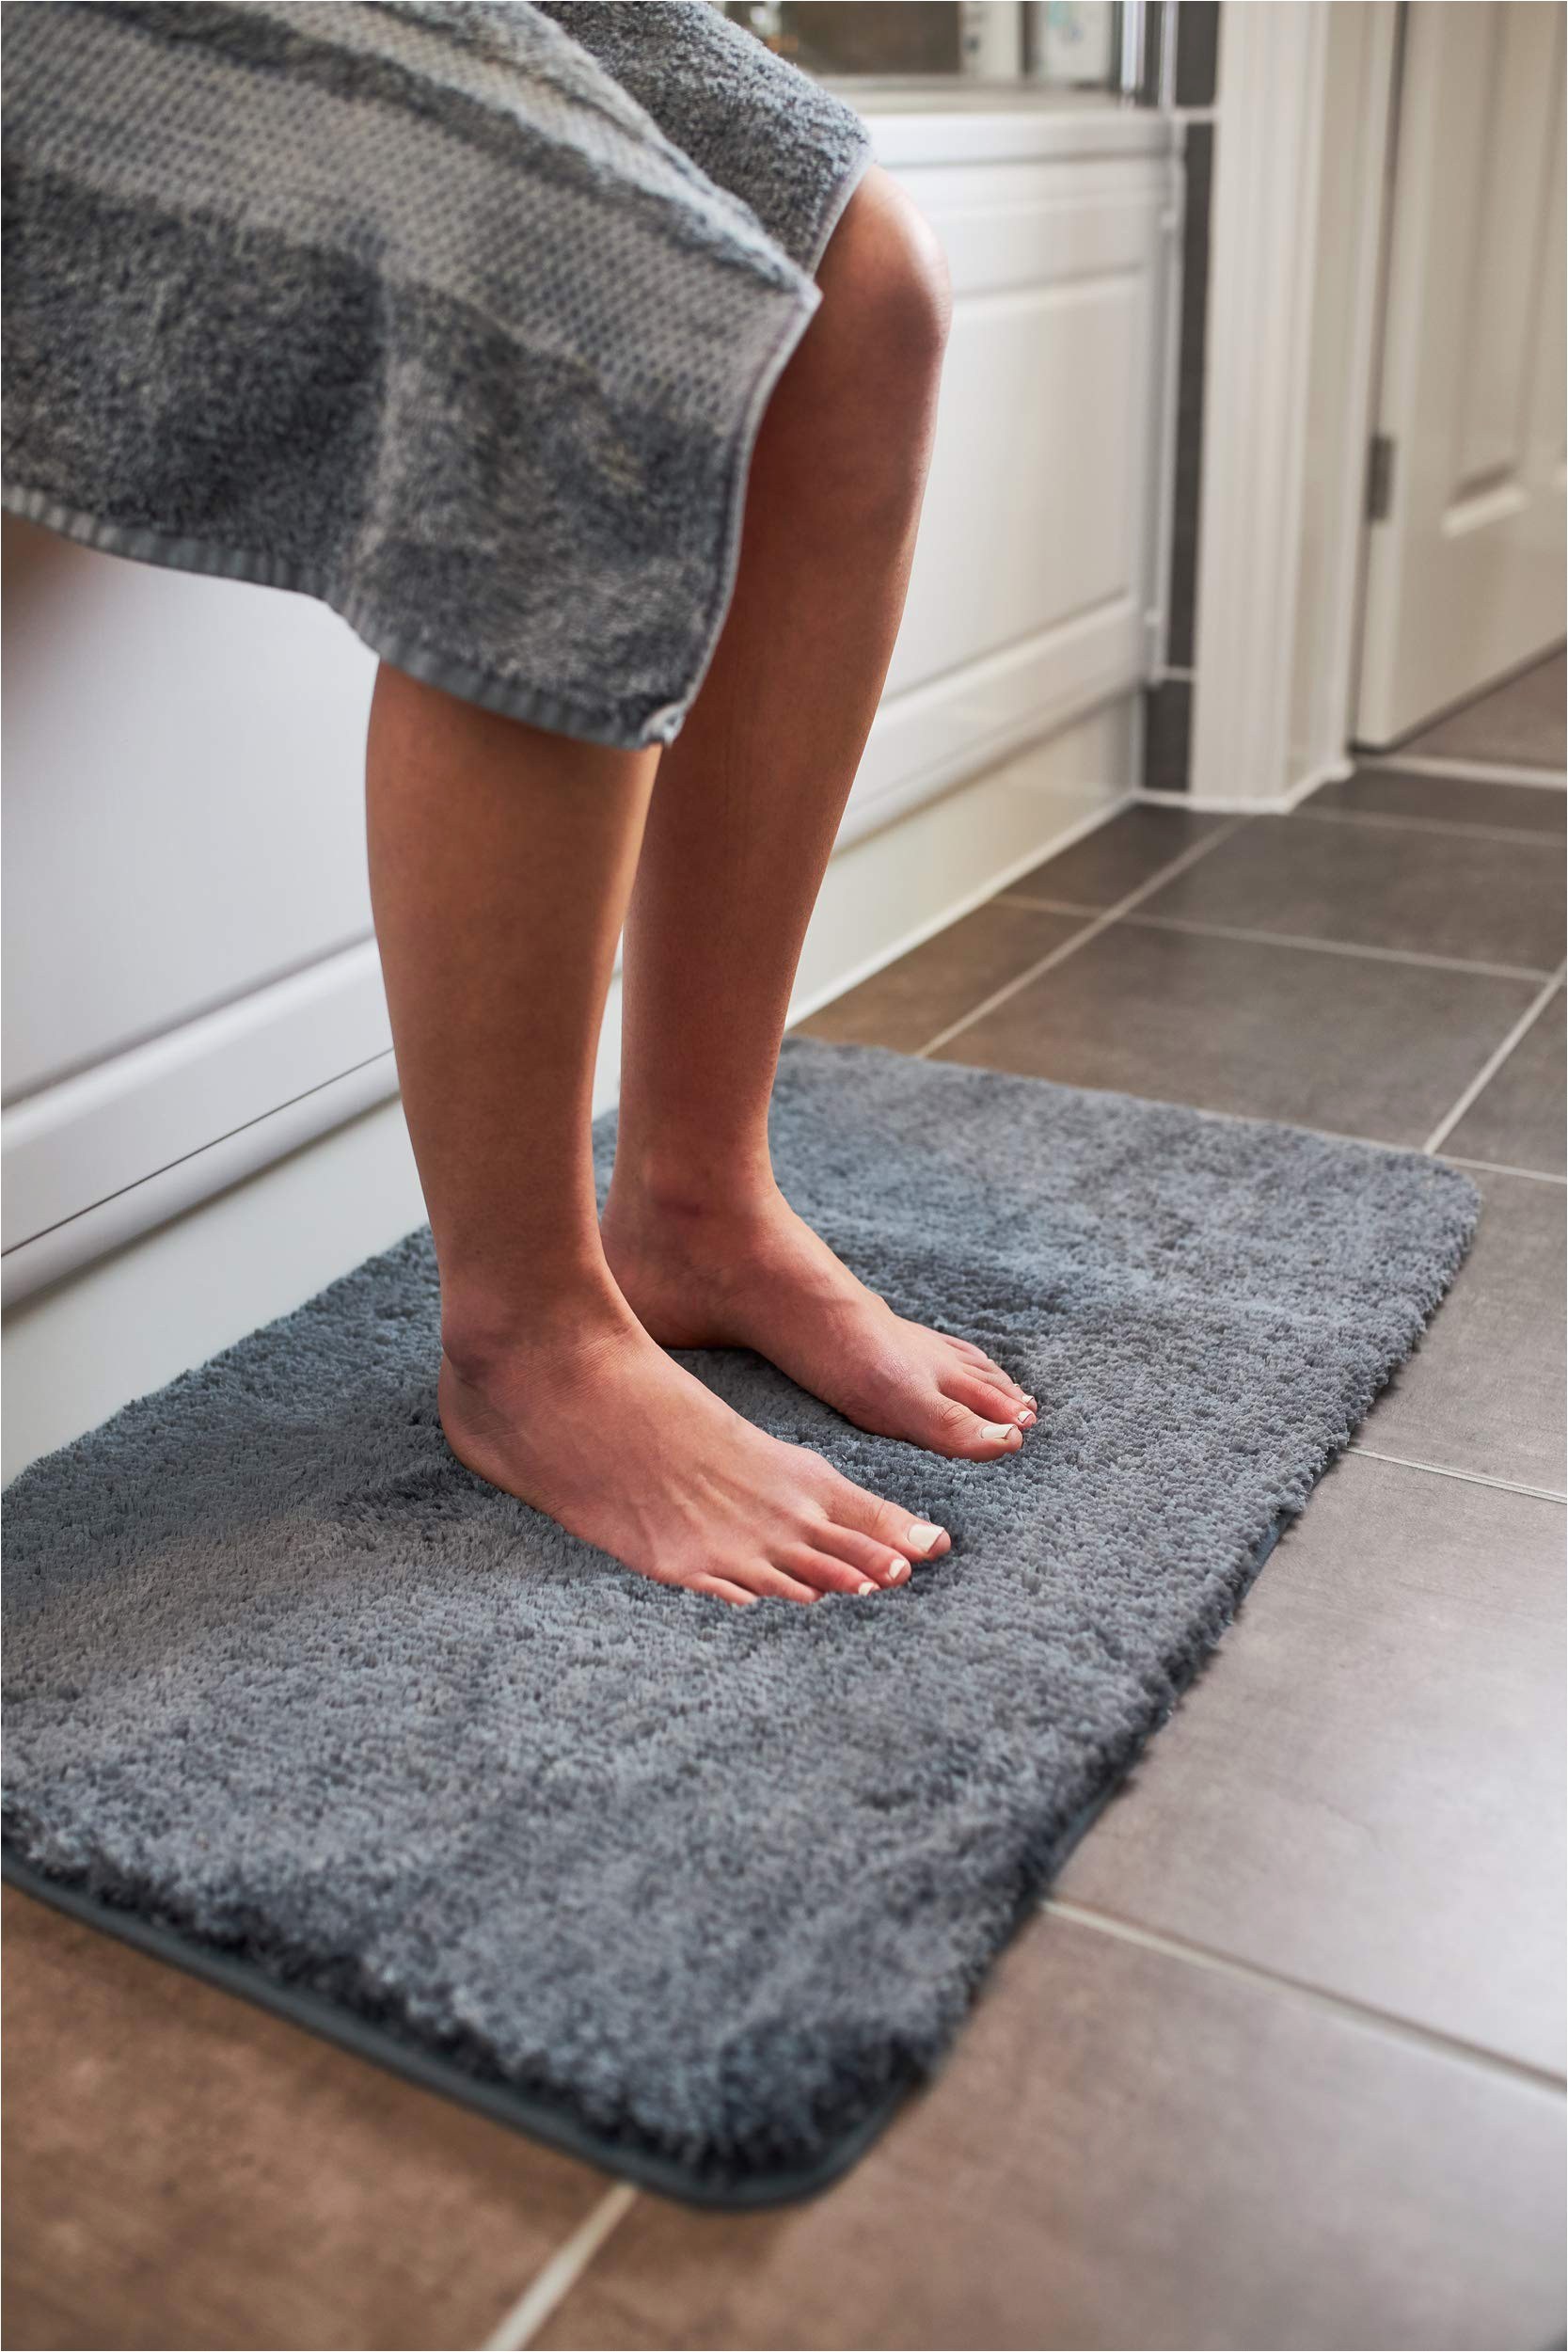 Non Slip Bathroom Rugs for Elderly Luxury Grey Bath Mat Microfiber Non Slip Bath Rug with Super soft Absorbent Dry Fast Design for Bath and Shower